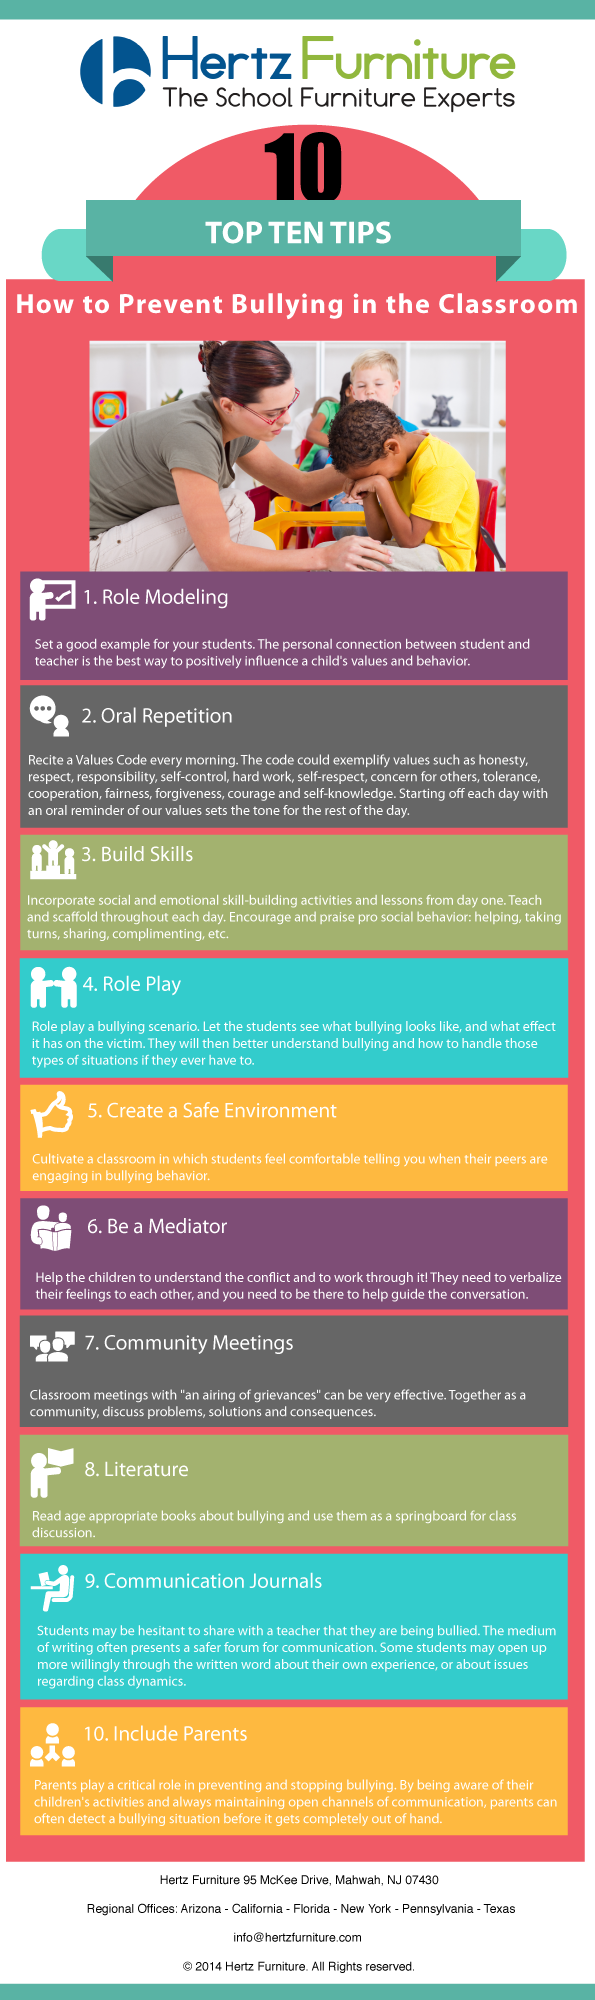 Top 10 Bullying Tips Infographic